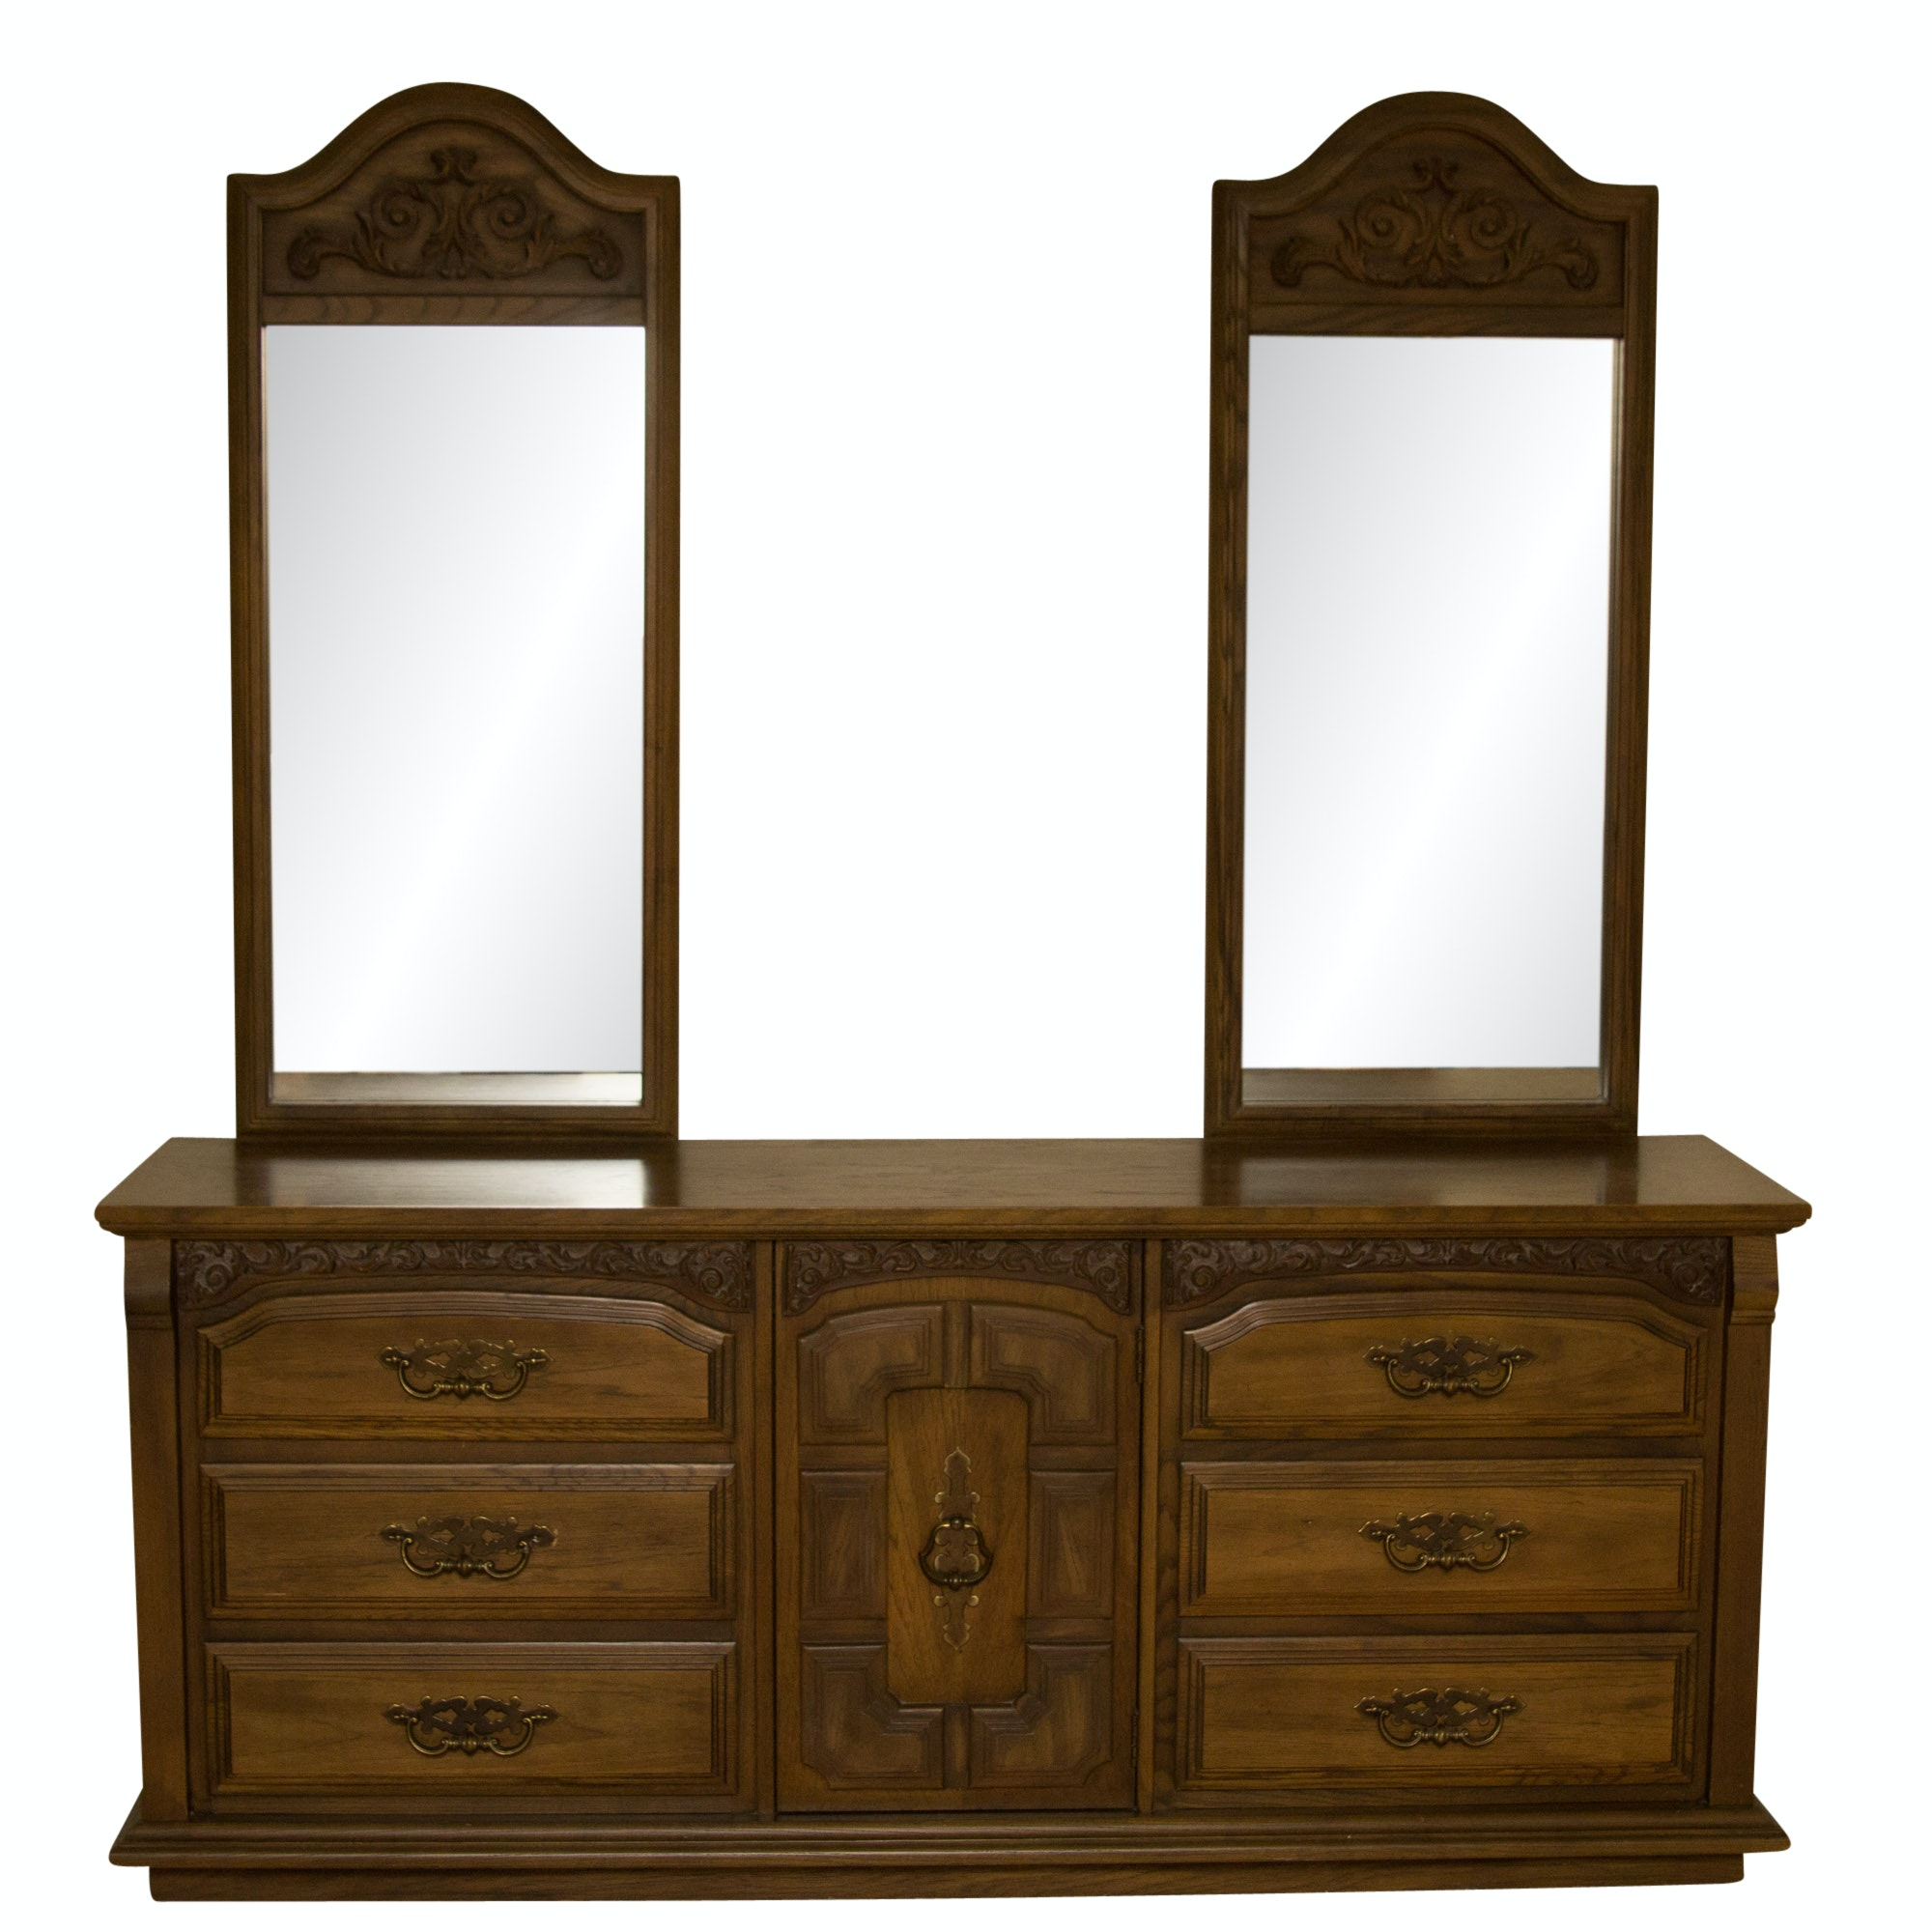 Stanley Furniture Dresser with Mirrors